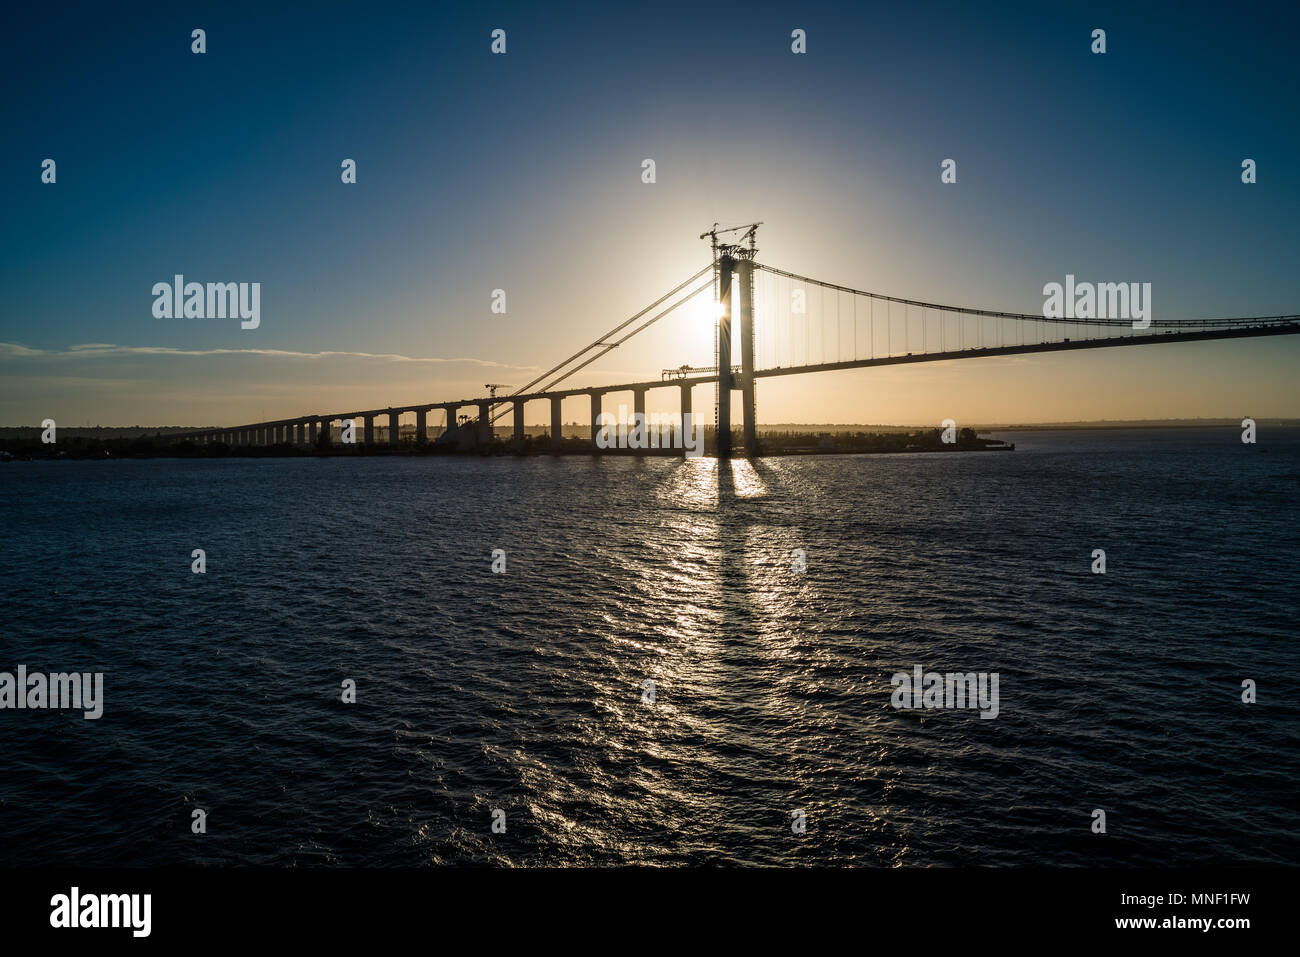 Sundown shot of a bridge that crosses the Mozambique Channel at Maputo. - Stock Image